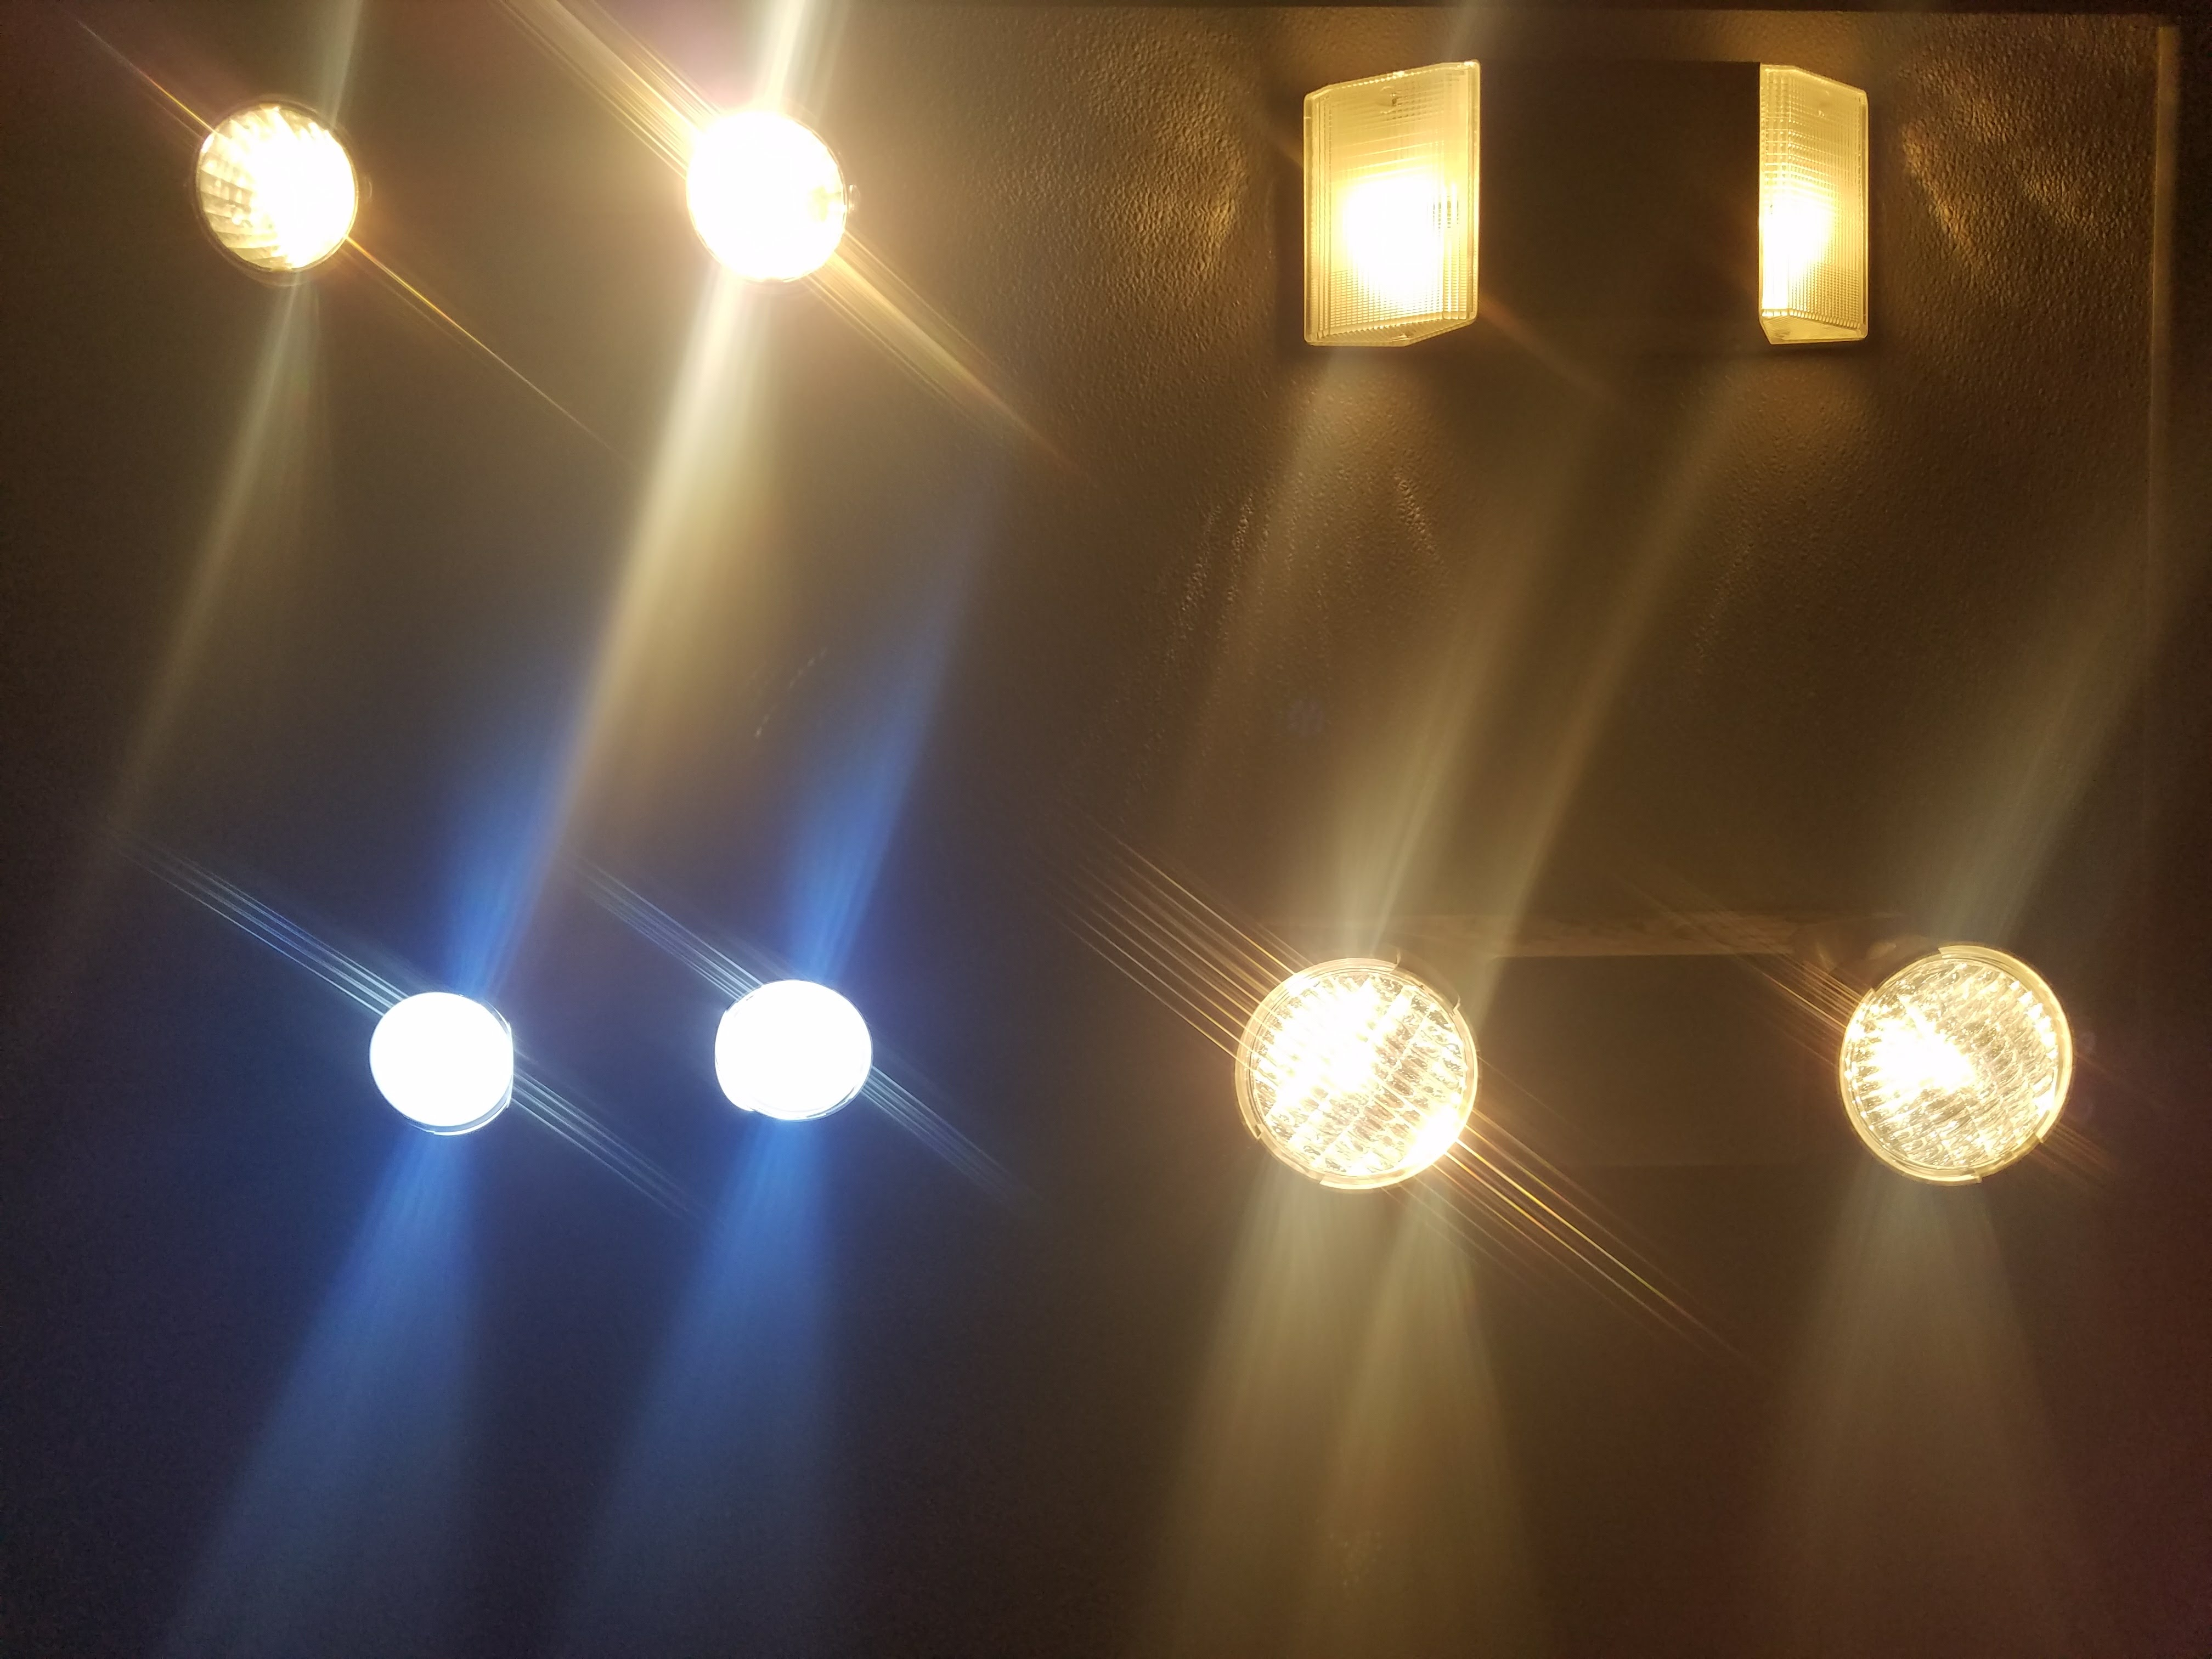 Is Emergency Lighting Required in All Structures and Buildings?